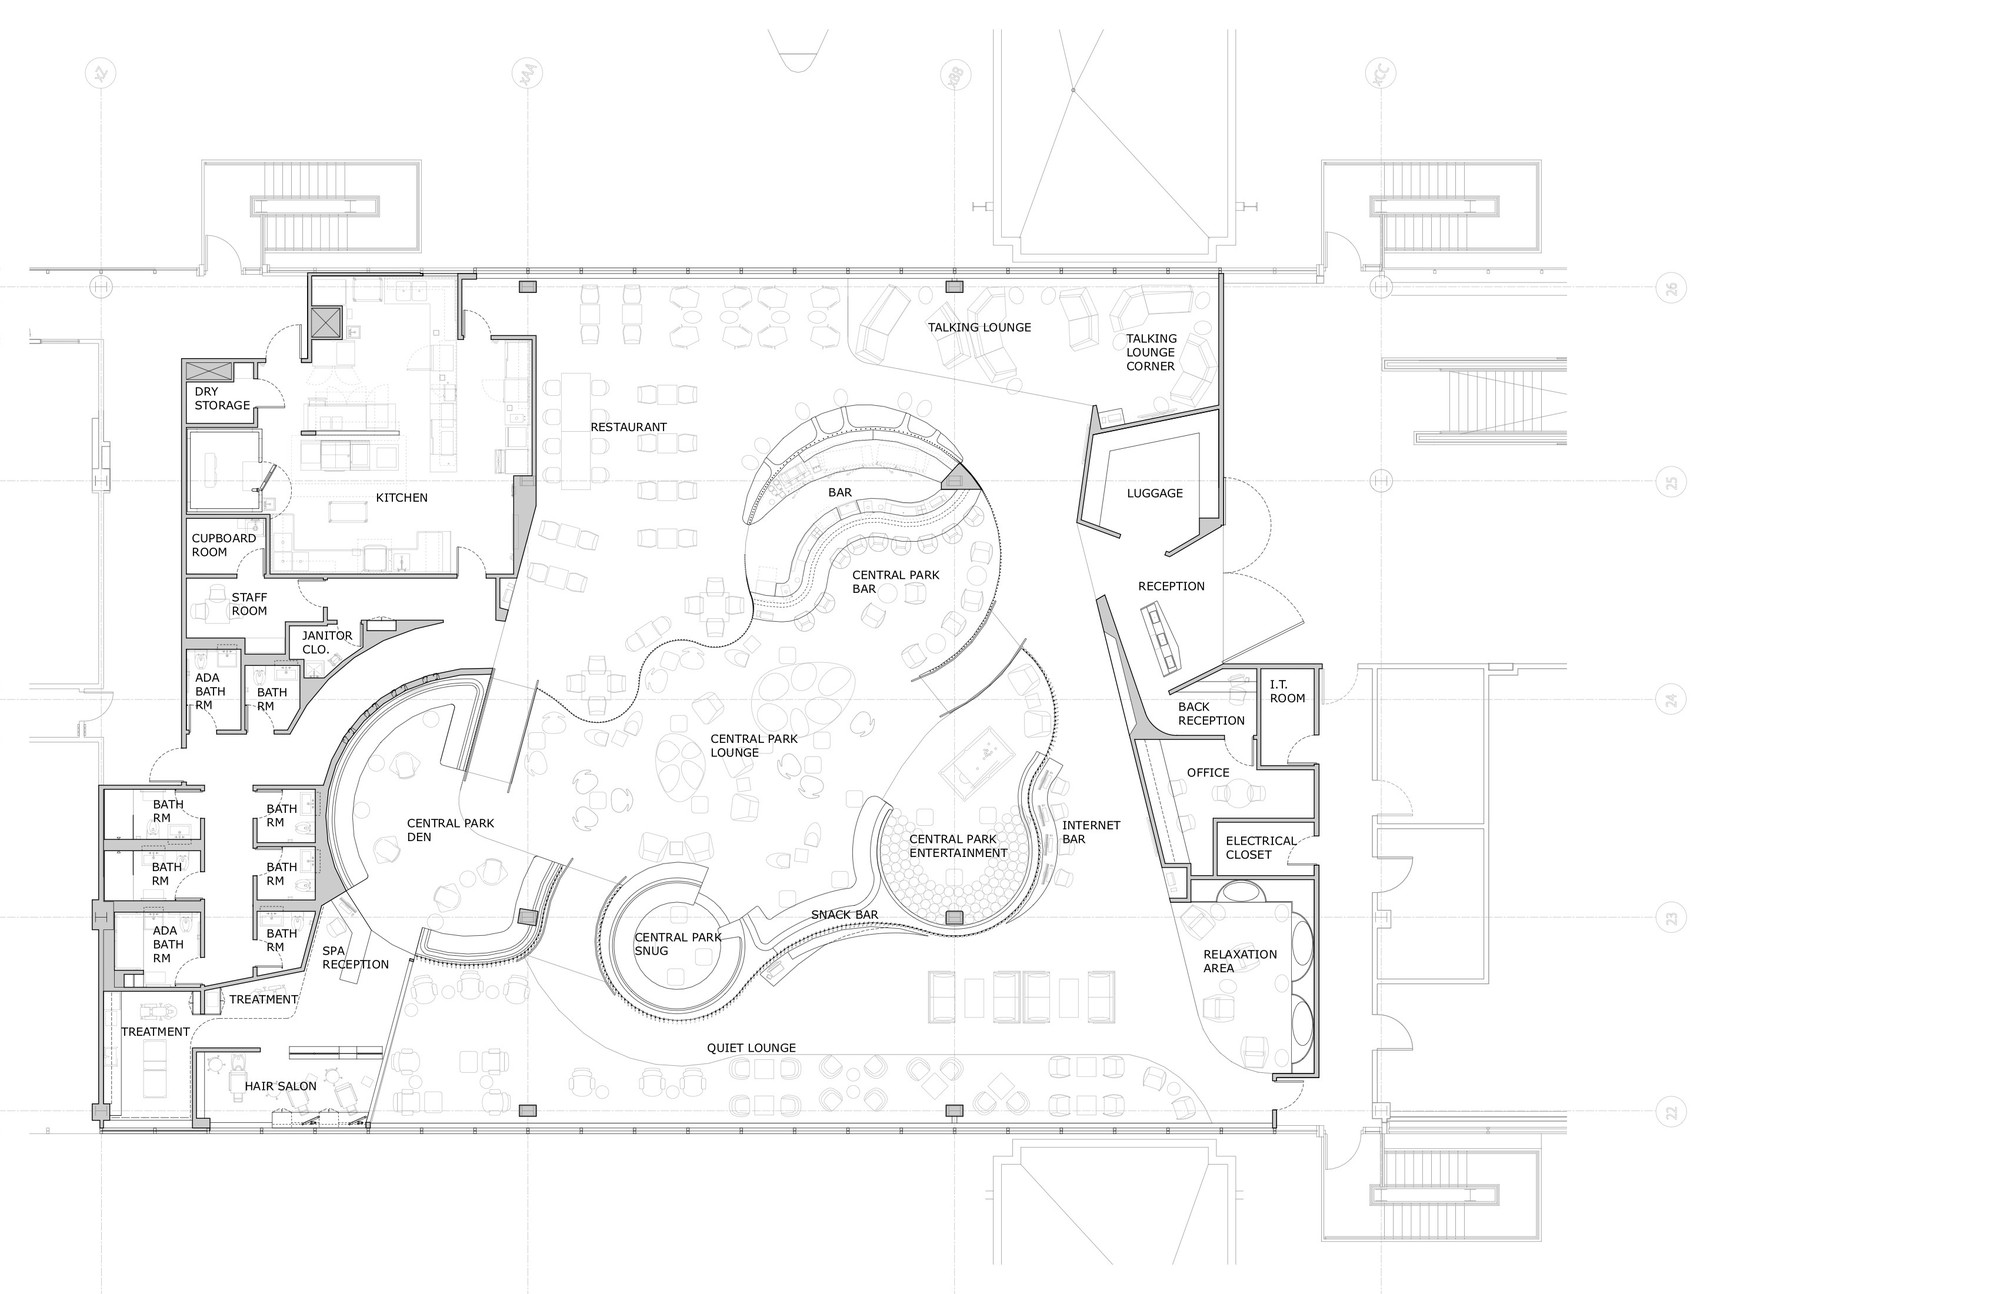 Virgin atlantic clubhouse slade architecture archdaily for Clubhouse floor plans